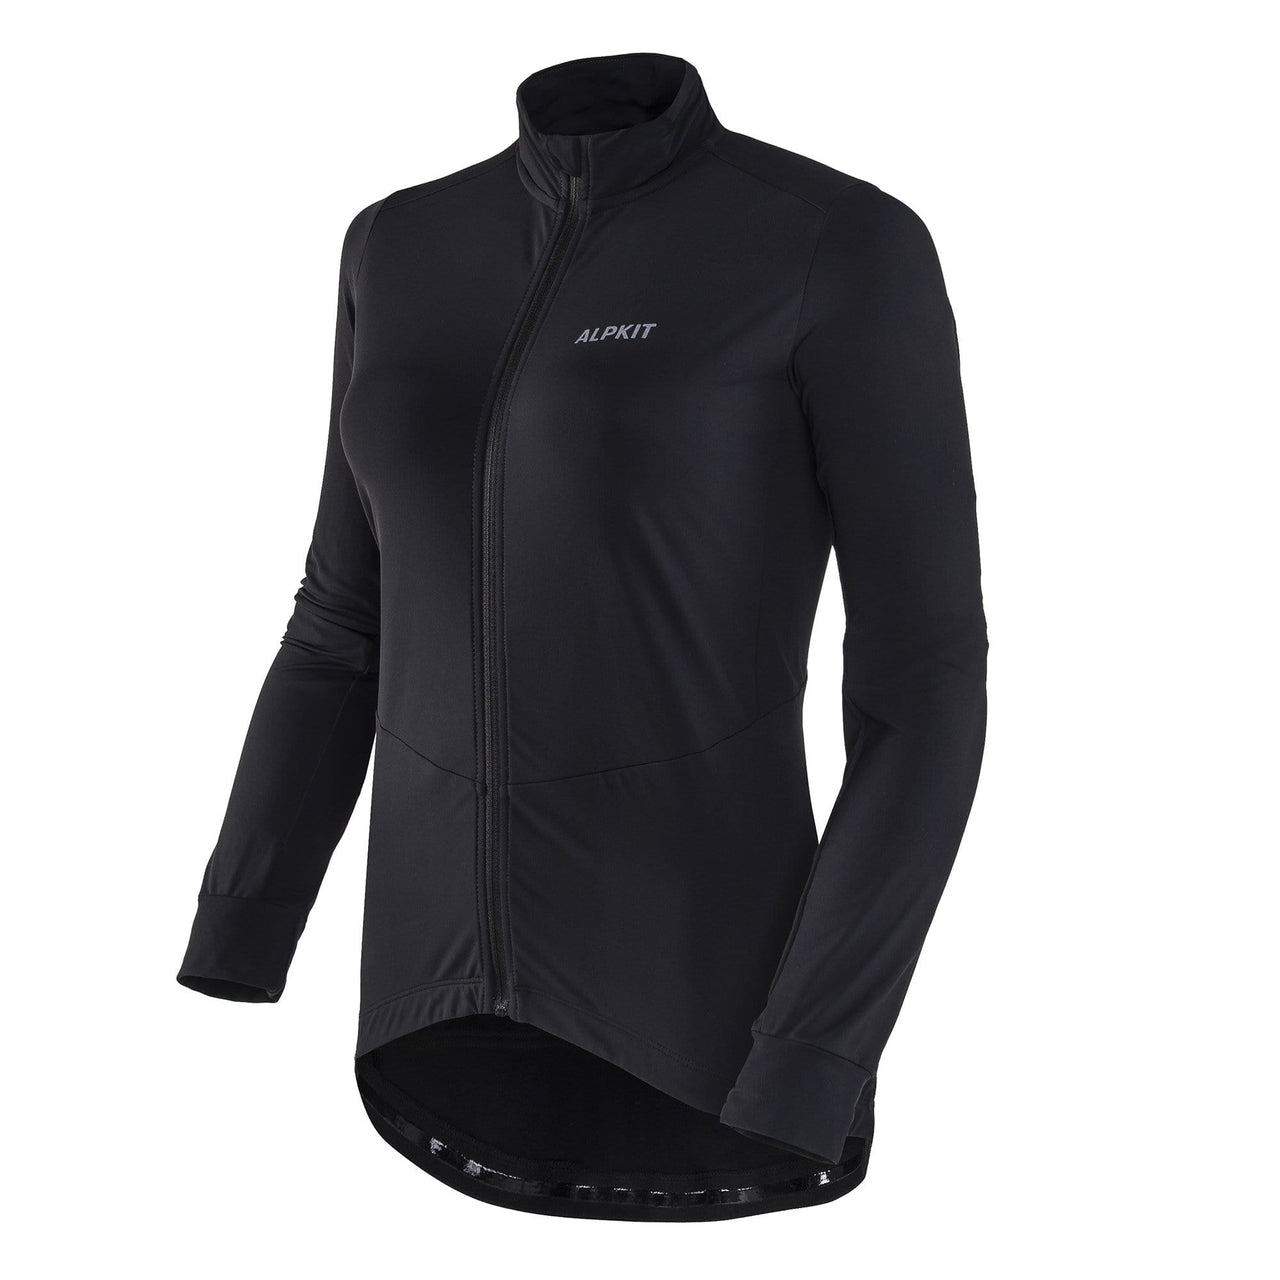 Rhythm Thicky Jersey [Womens]